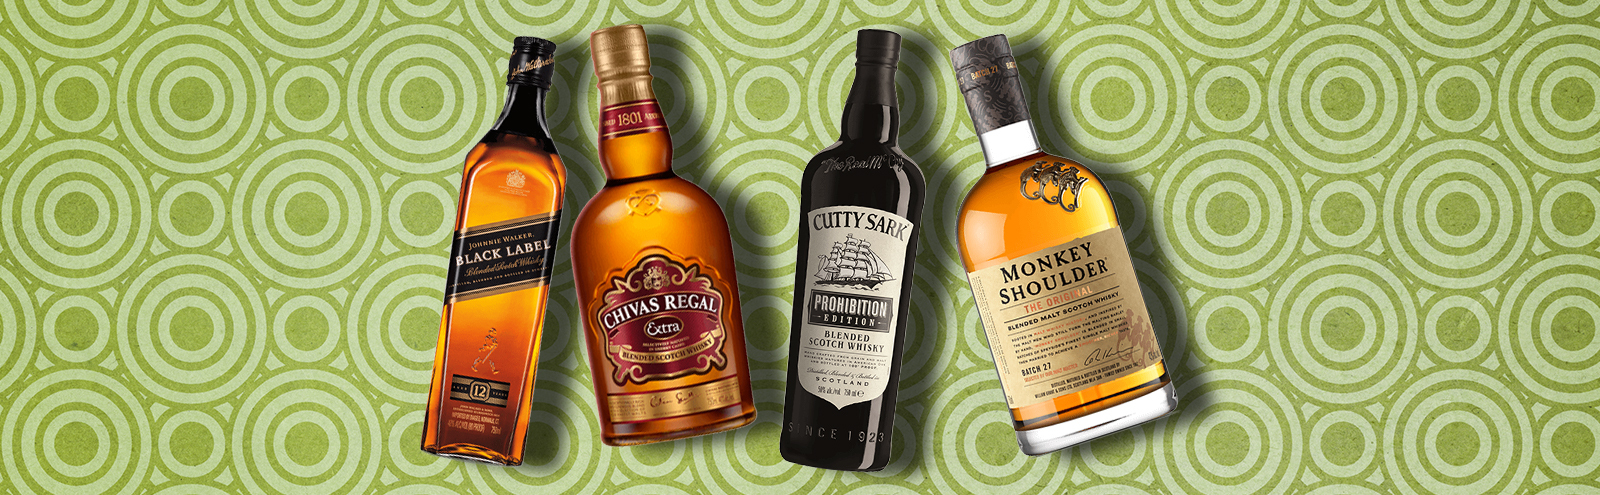 We Blind Tested Blended Scotches In The $40 Range And A Clear Winner Emerged